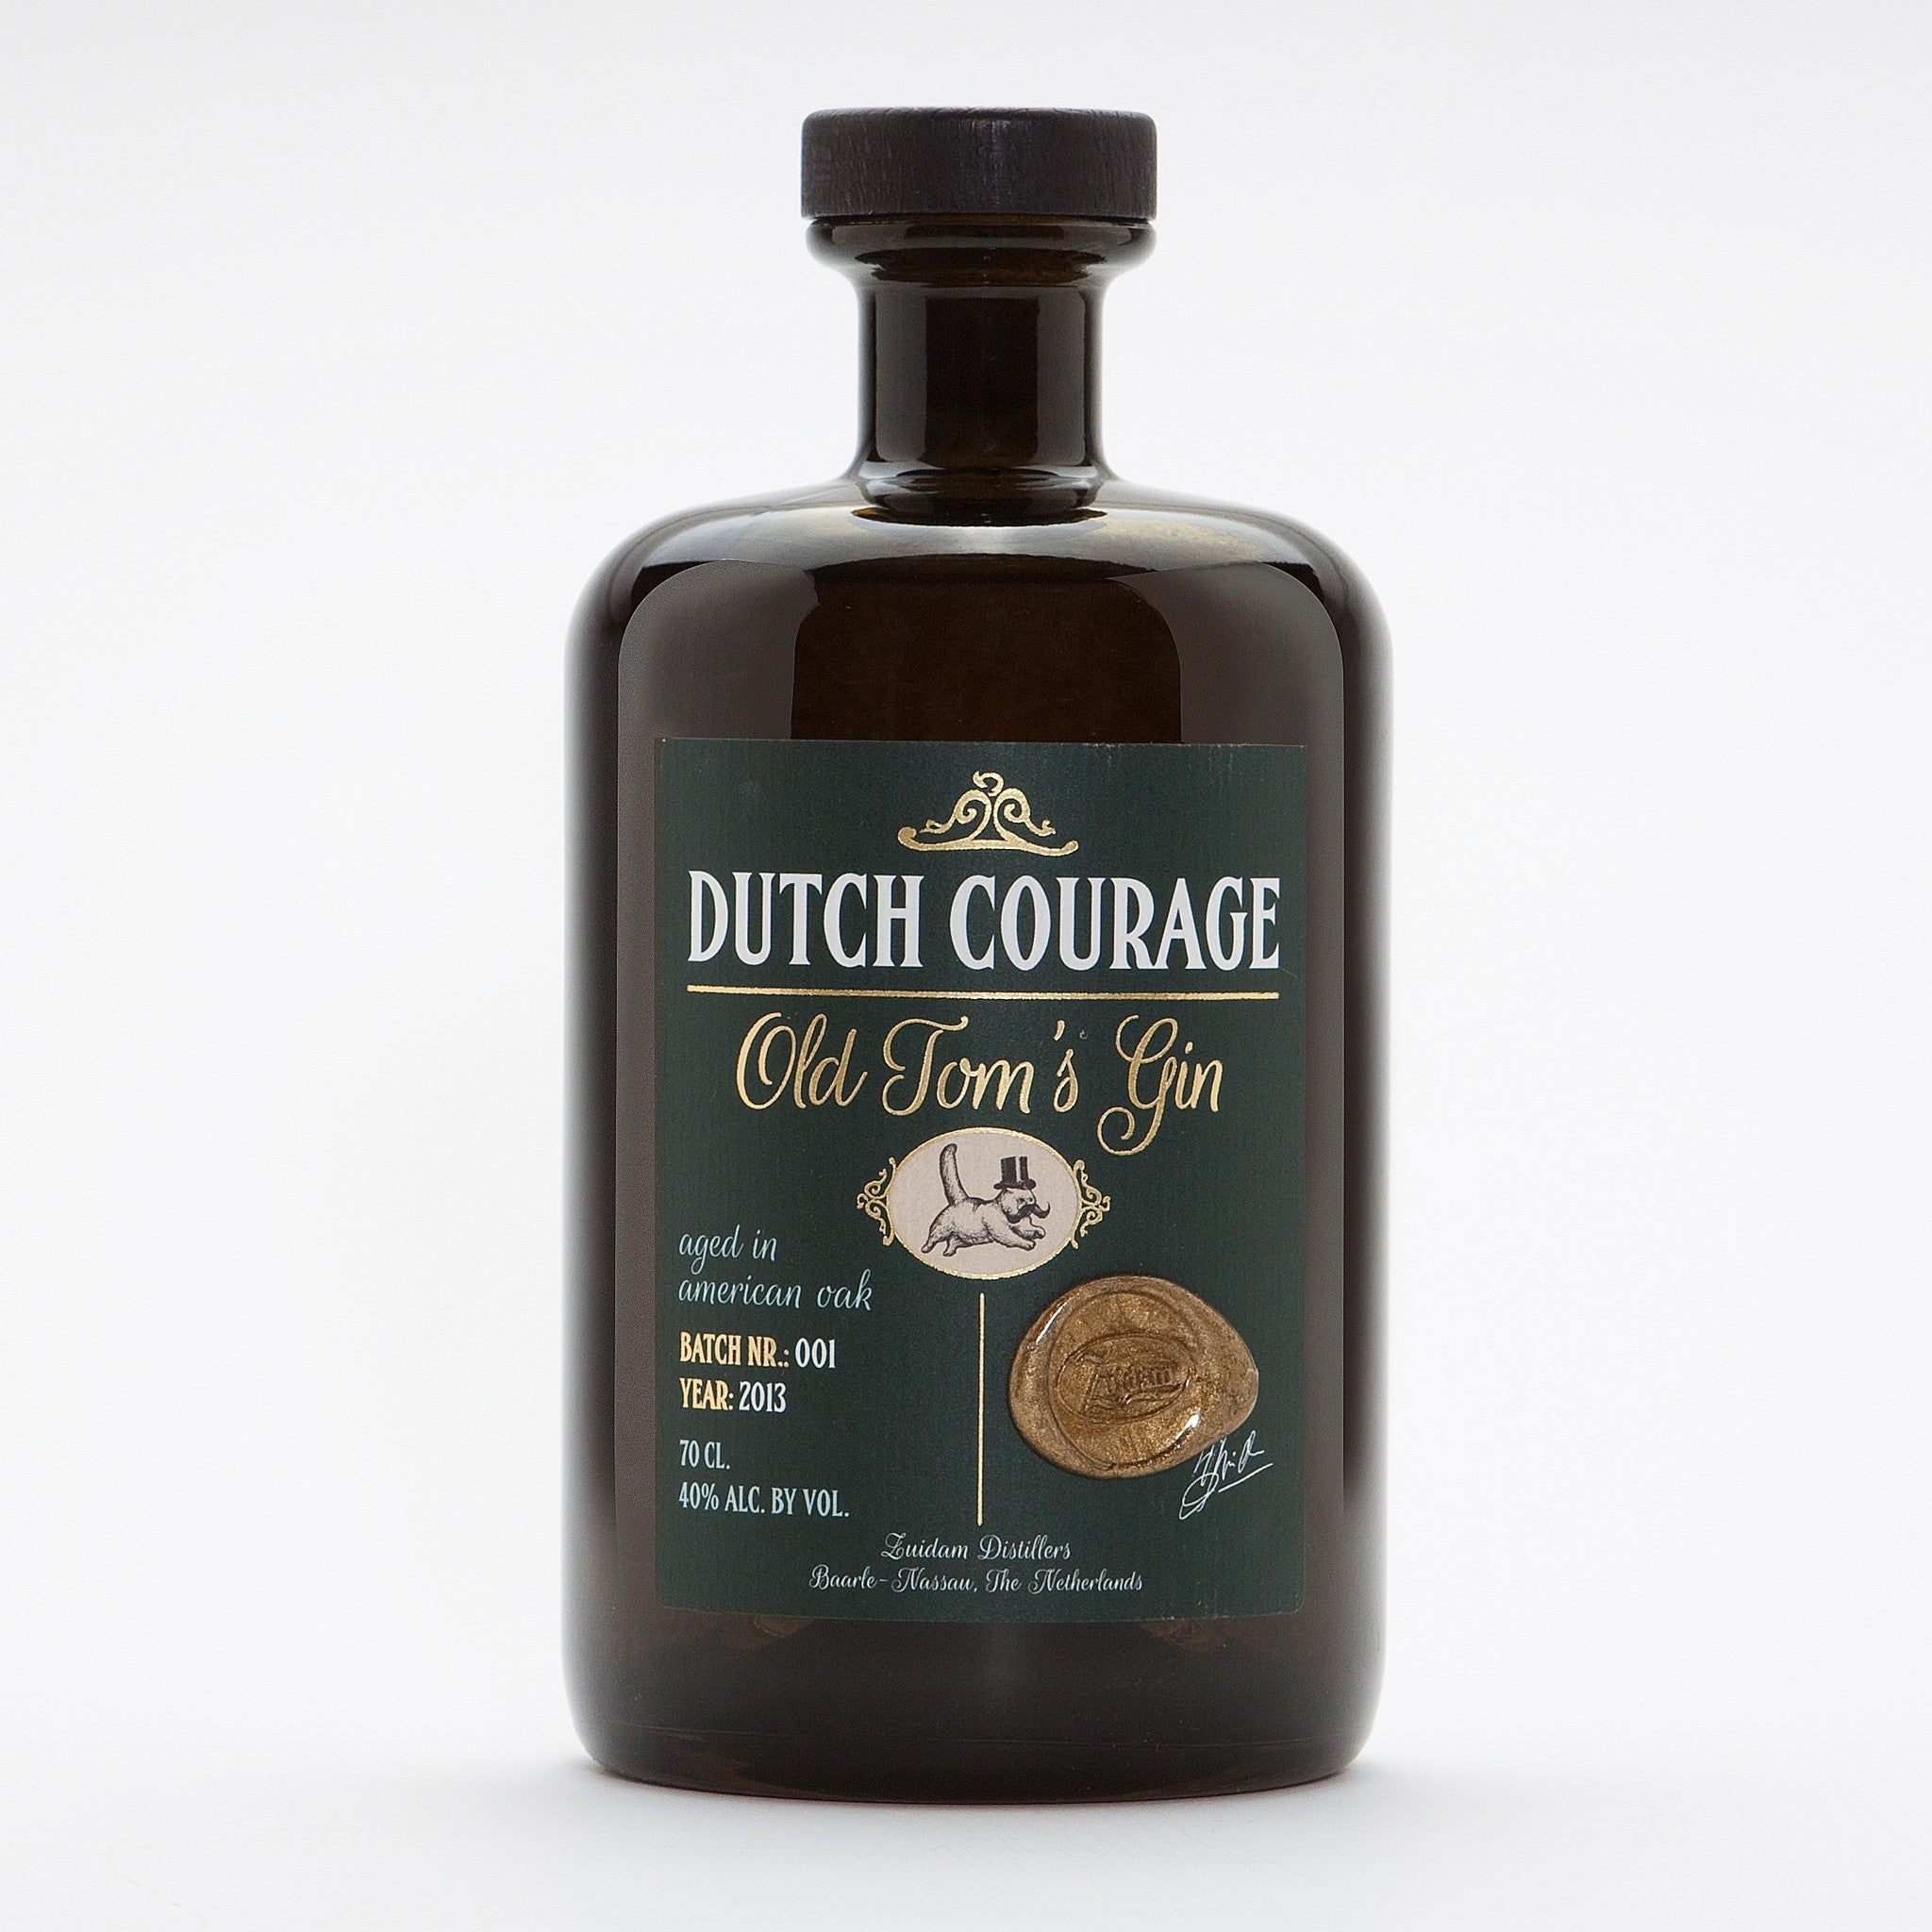 http://www.diffordsguide.com/beer-wine-spirits/spirits/gin-and-juniper-spirits/BWS004815/dutch-courage-aged-gin-88